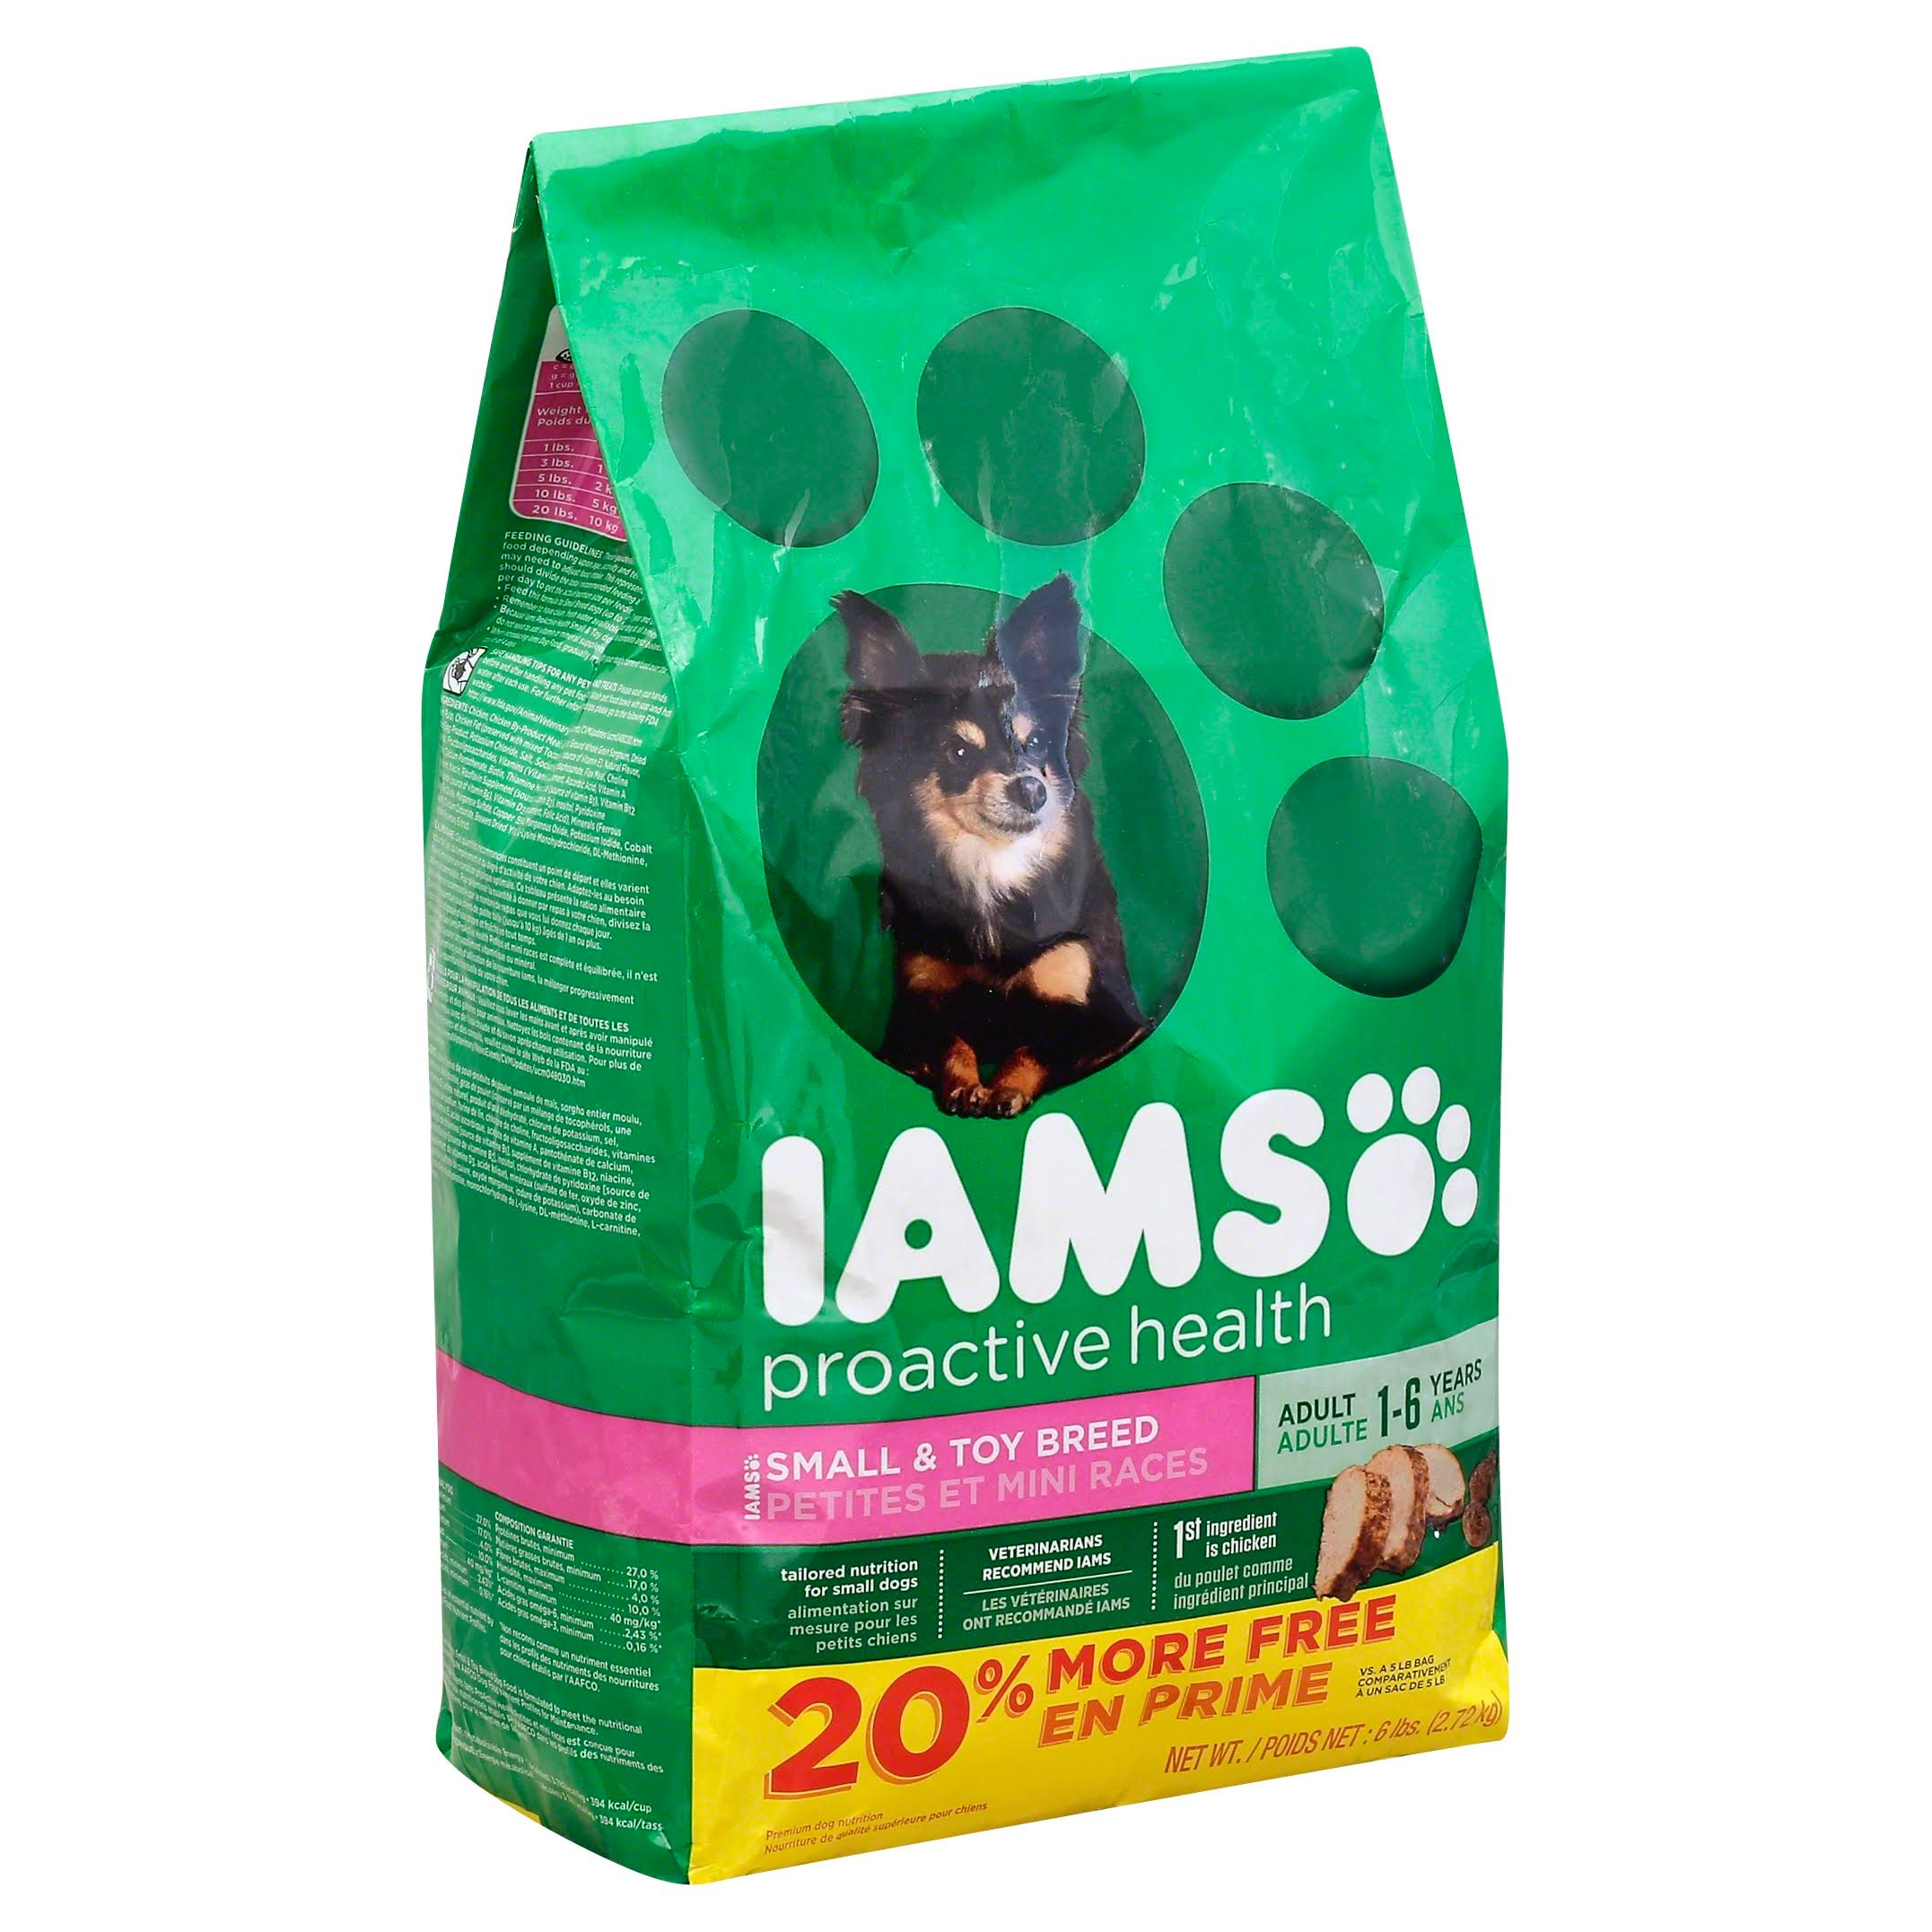 Iams Proactive Health Adult Dry Dog Food - Small and Toy Breed, 6 lbs